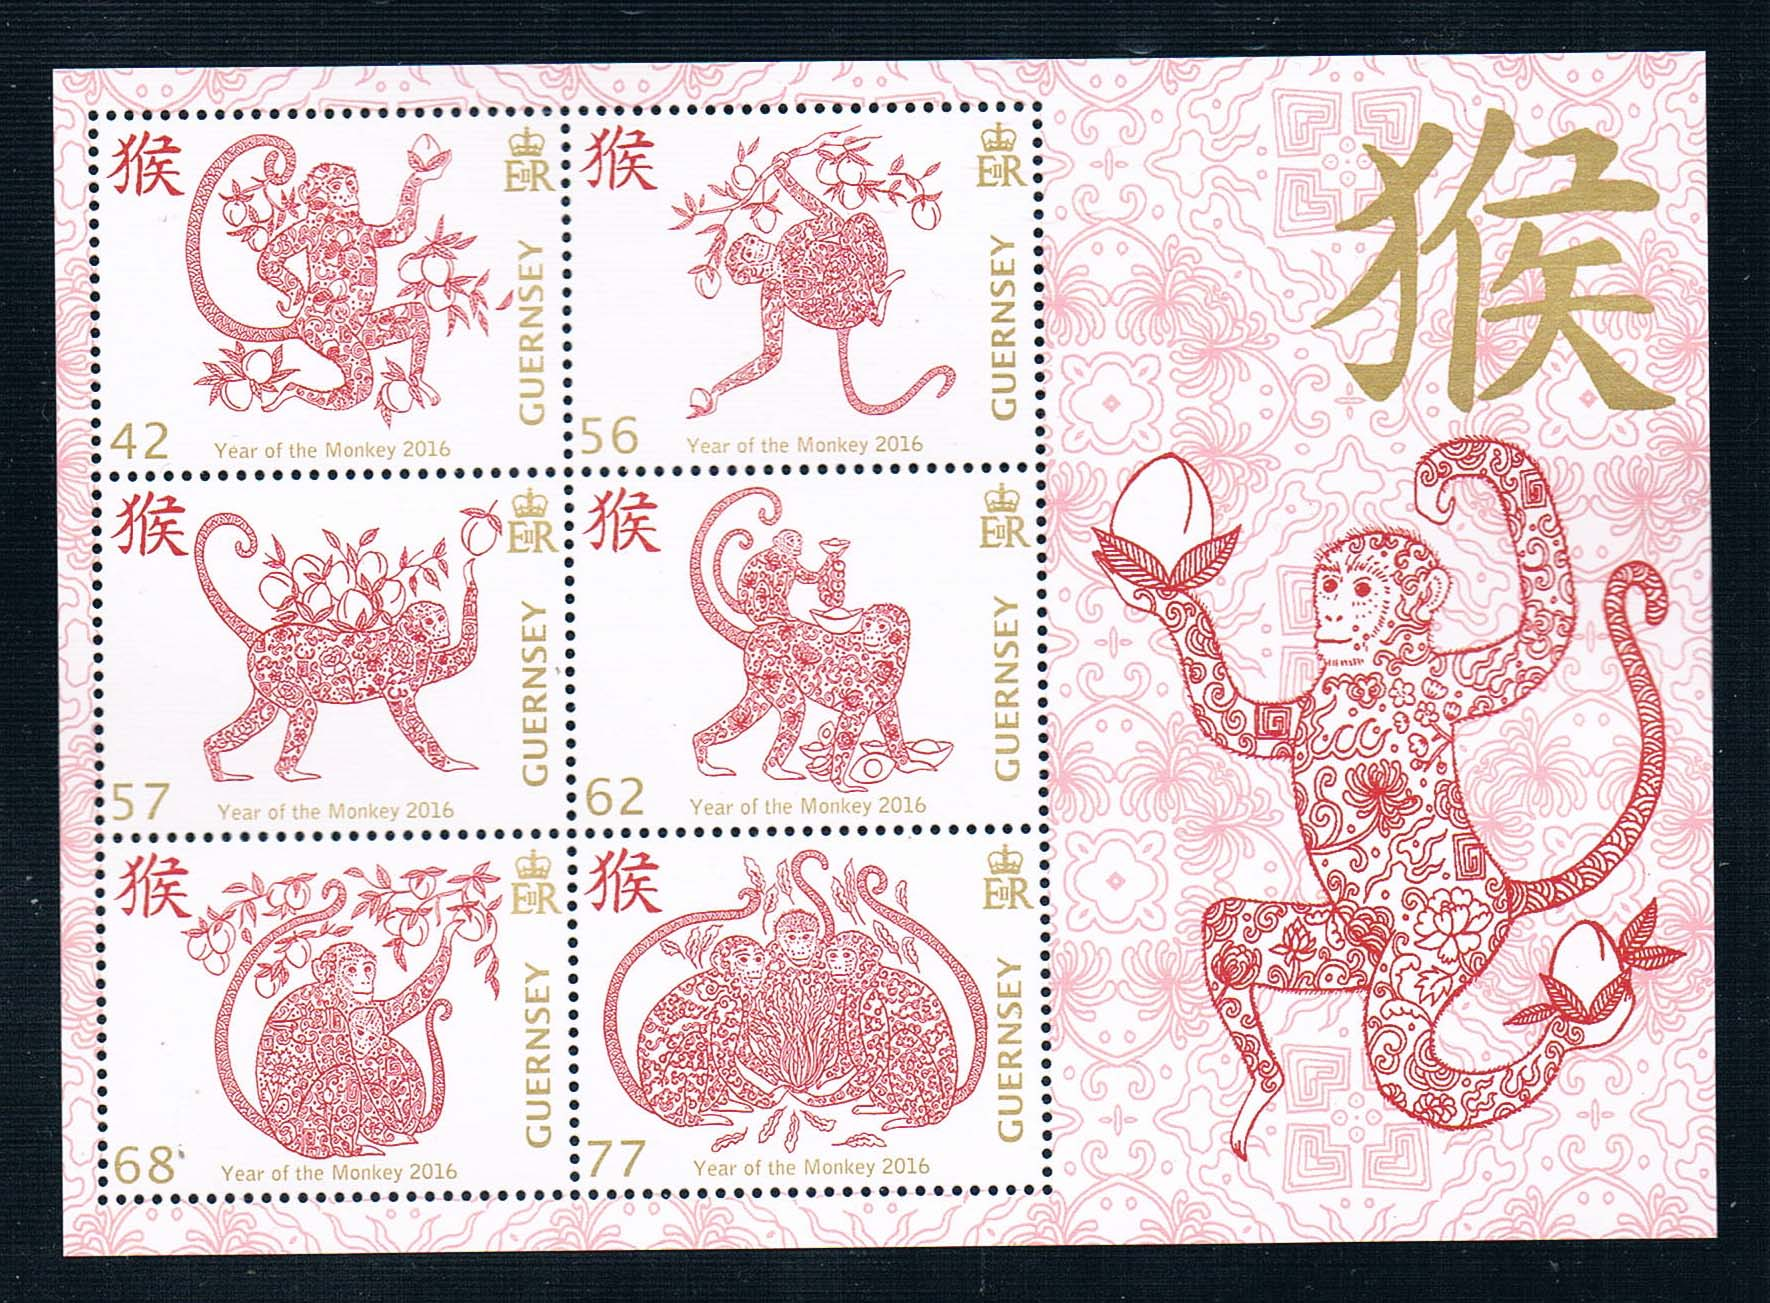 GB0834 UK Chinese bingshen year 2016 Guernsey Zodiac stamps 1MS new 0120 te0192 garner 2005 international year of physics einstein 5 new stamps 0405